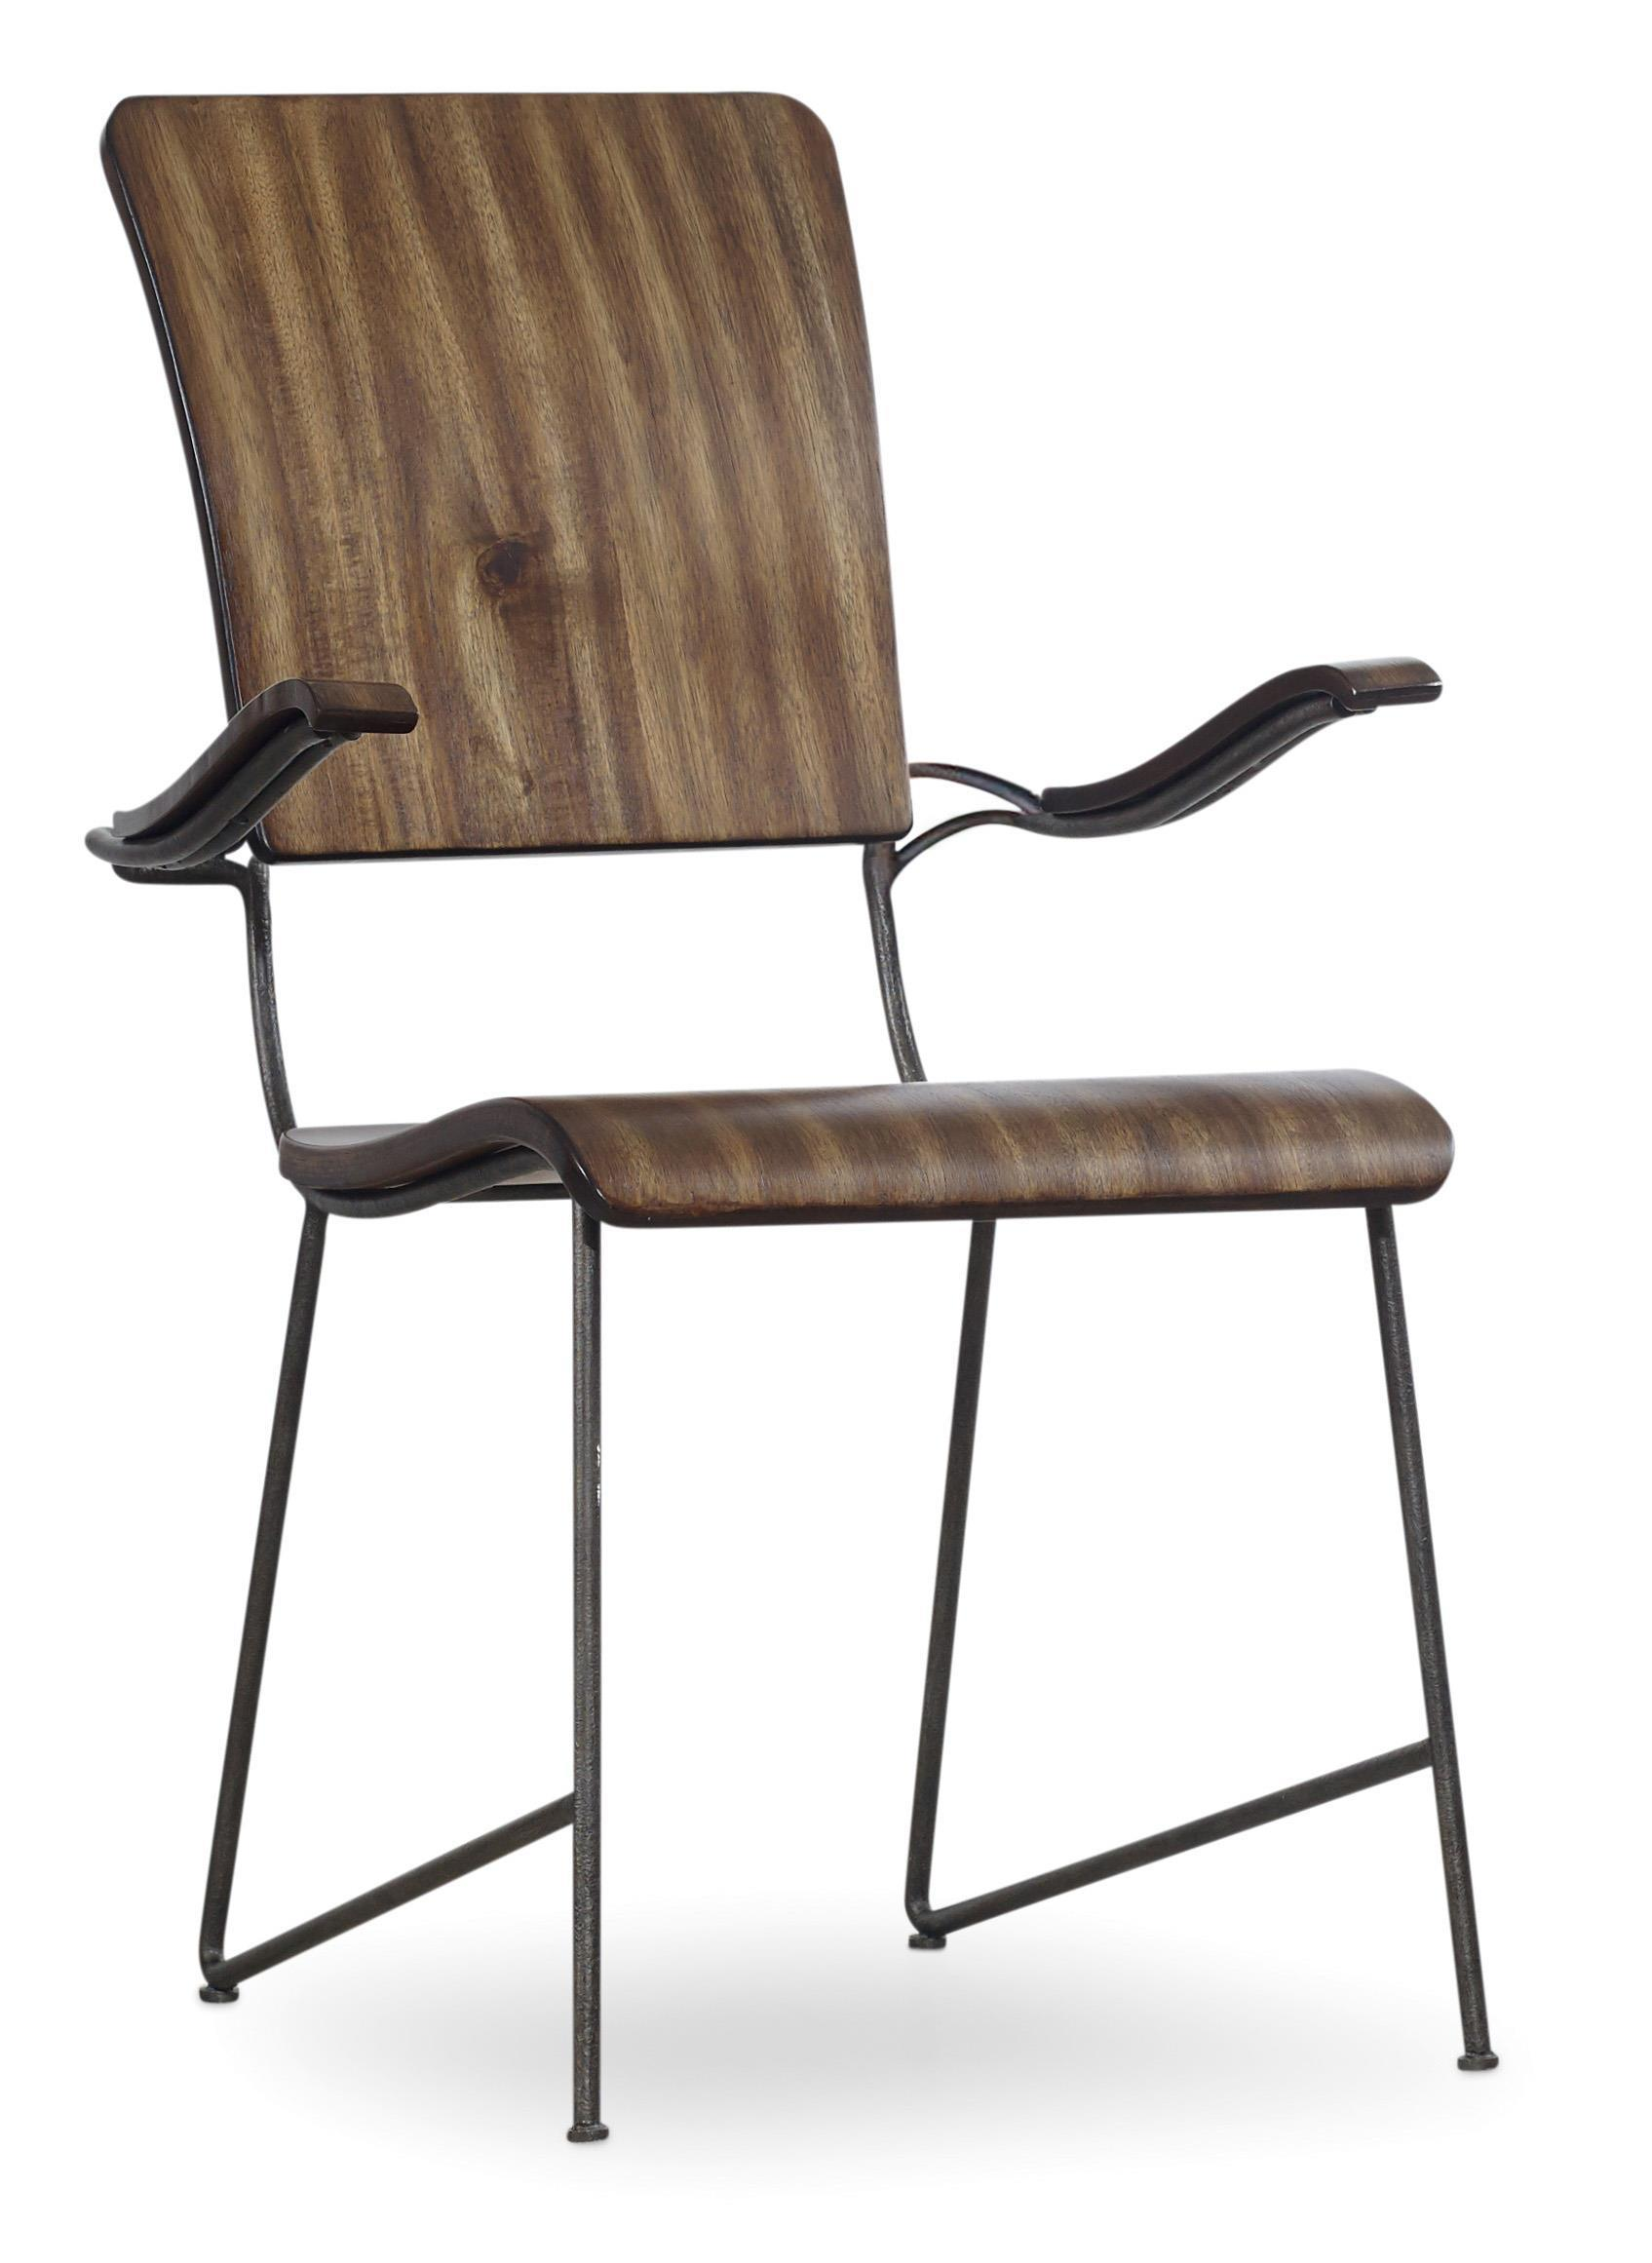 Hooker Furniture Studio 7H Vibe Bentwood Arm Chair - Item Number: 5388-75300